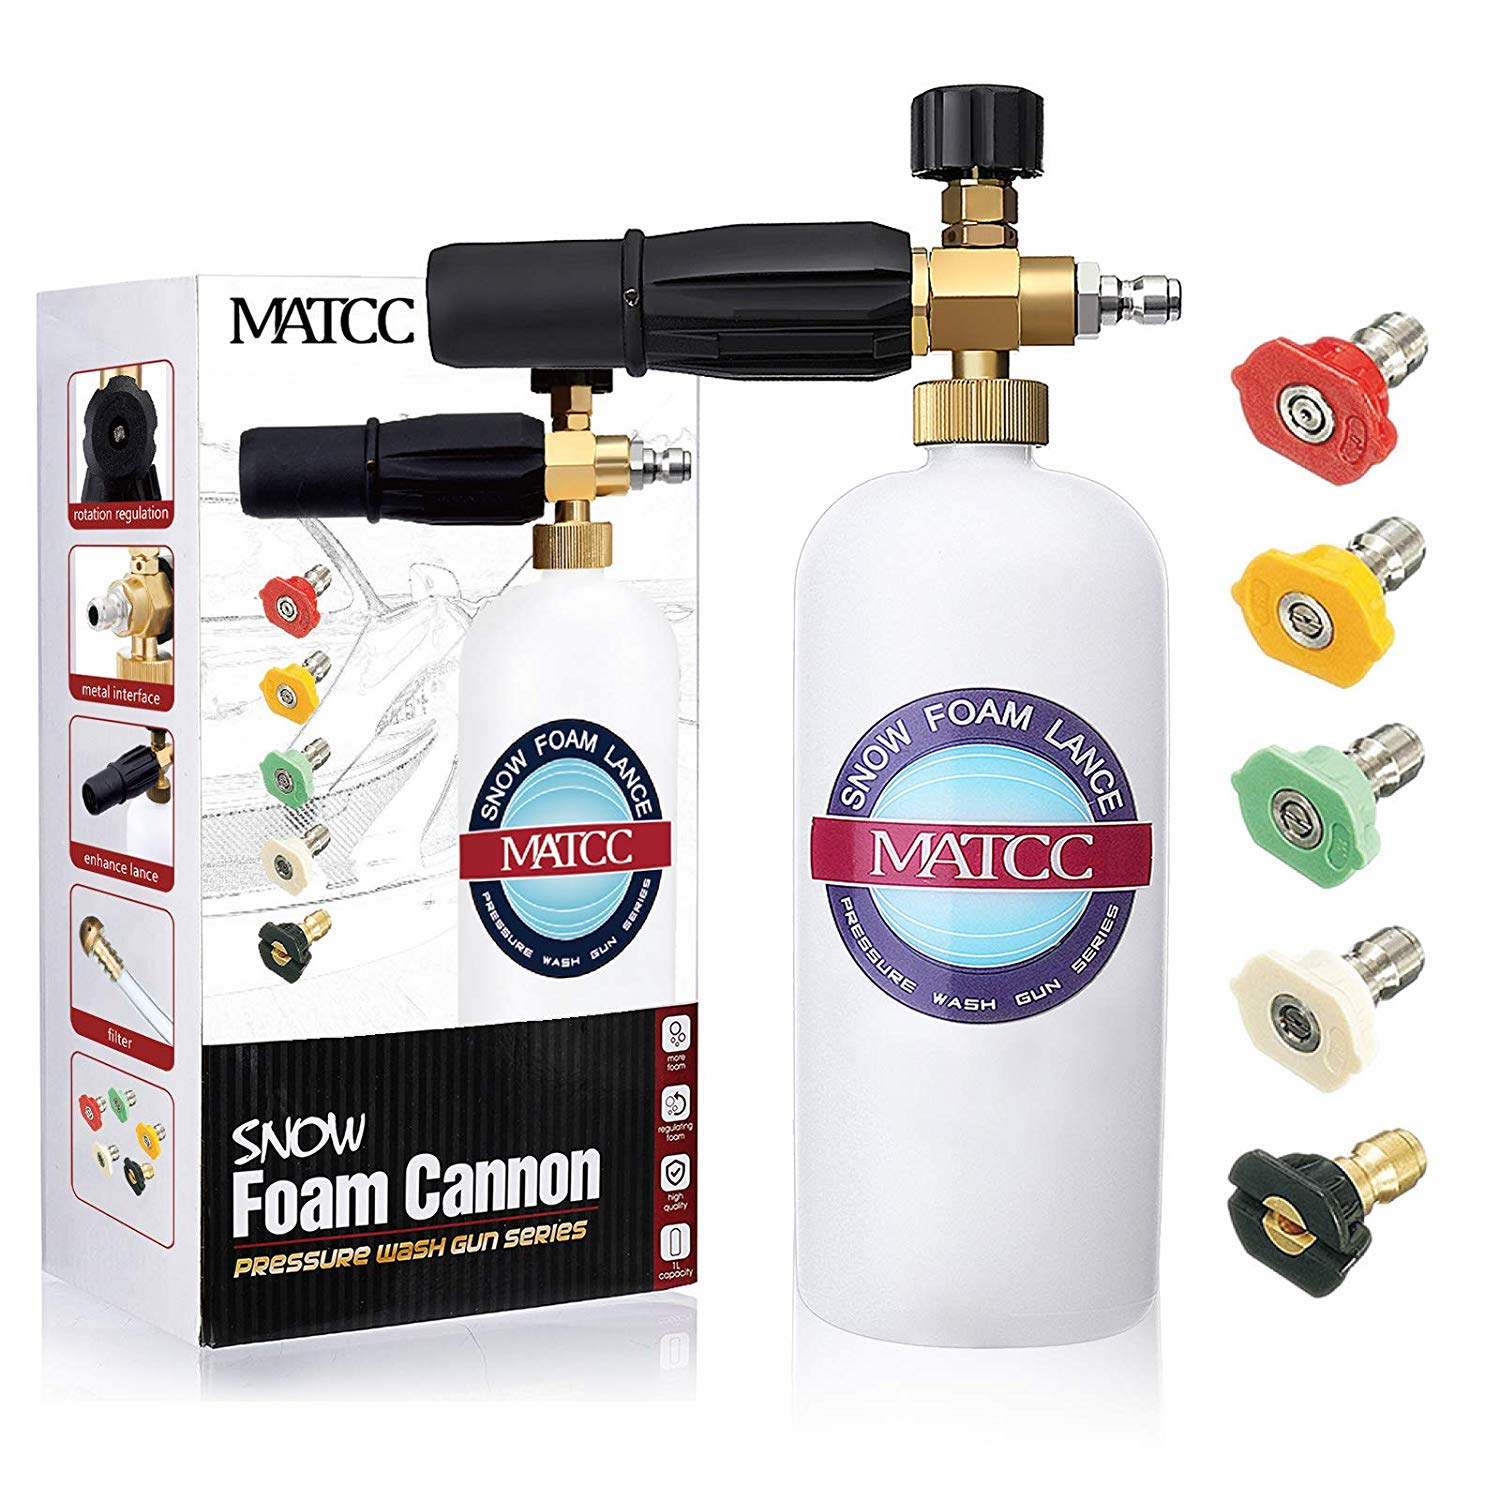 MATCC Foam Cannon Upgraded Foam Nozzle Pressure Washer Jet Wash Snow Foam Lance with 1/4'' Quick Connector Foam Blaster 5 Pressure Washer Nozzle Tips for Cleaning